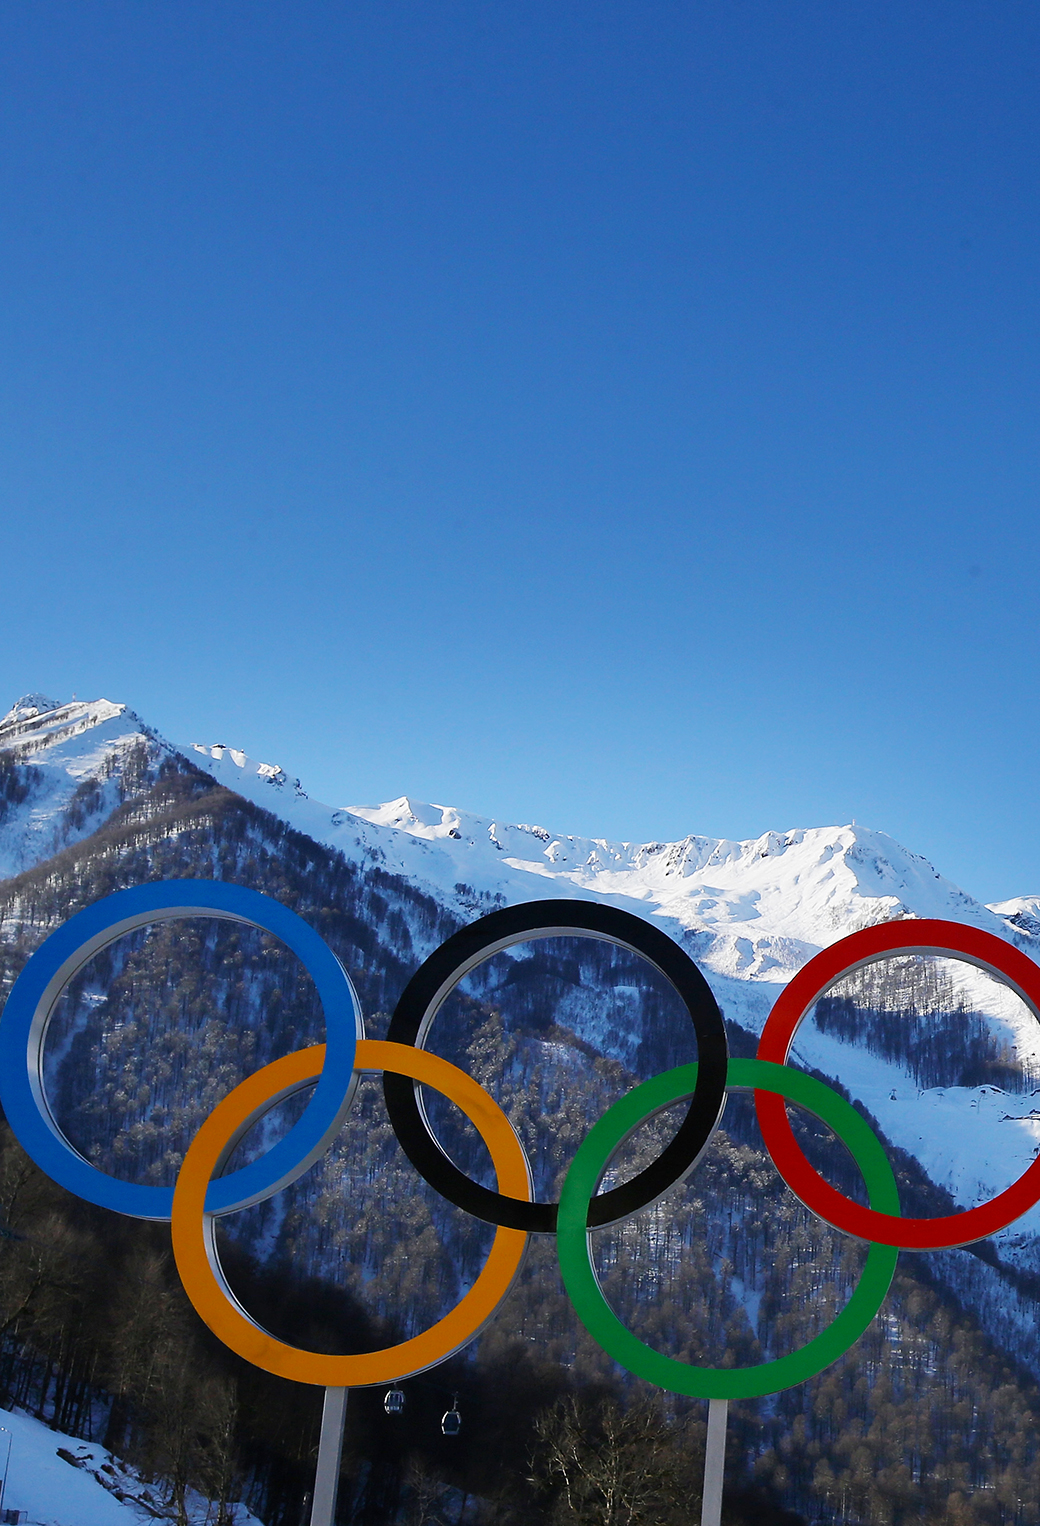 Sochi 2014 Olympics Games 3Wallpapers iphone Parallax Sochi 2014 Olympics Games